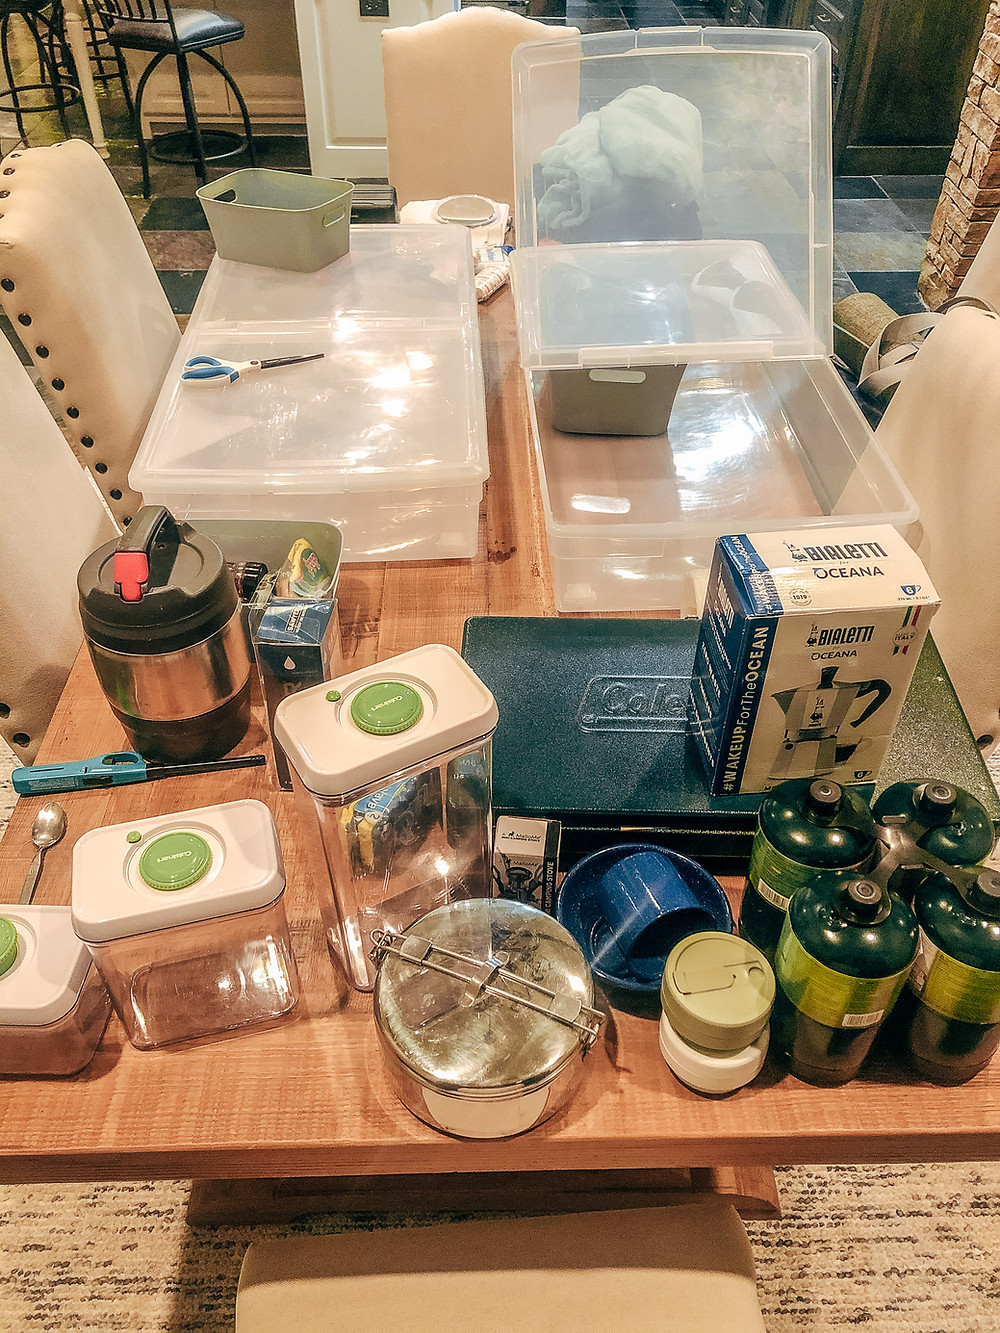 Kitchen gear and storage in a pile